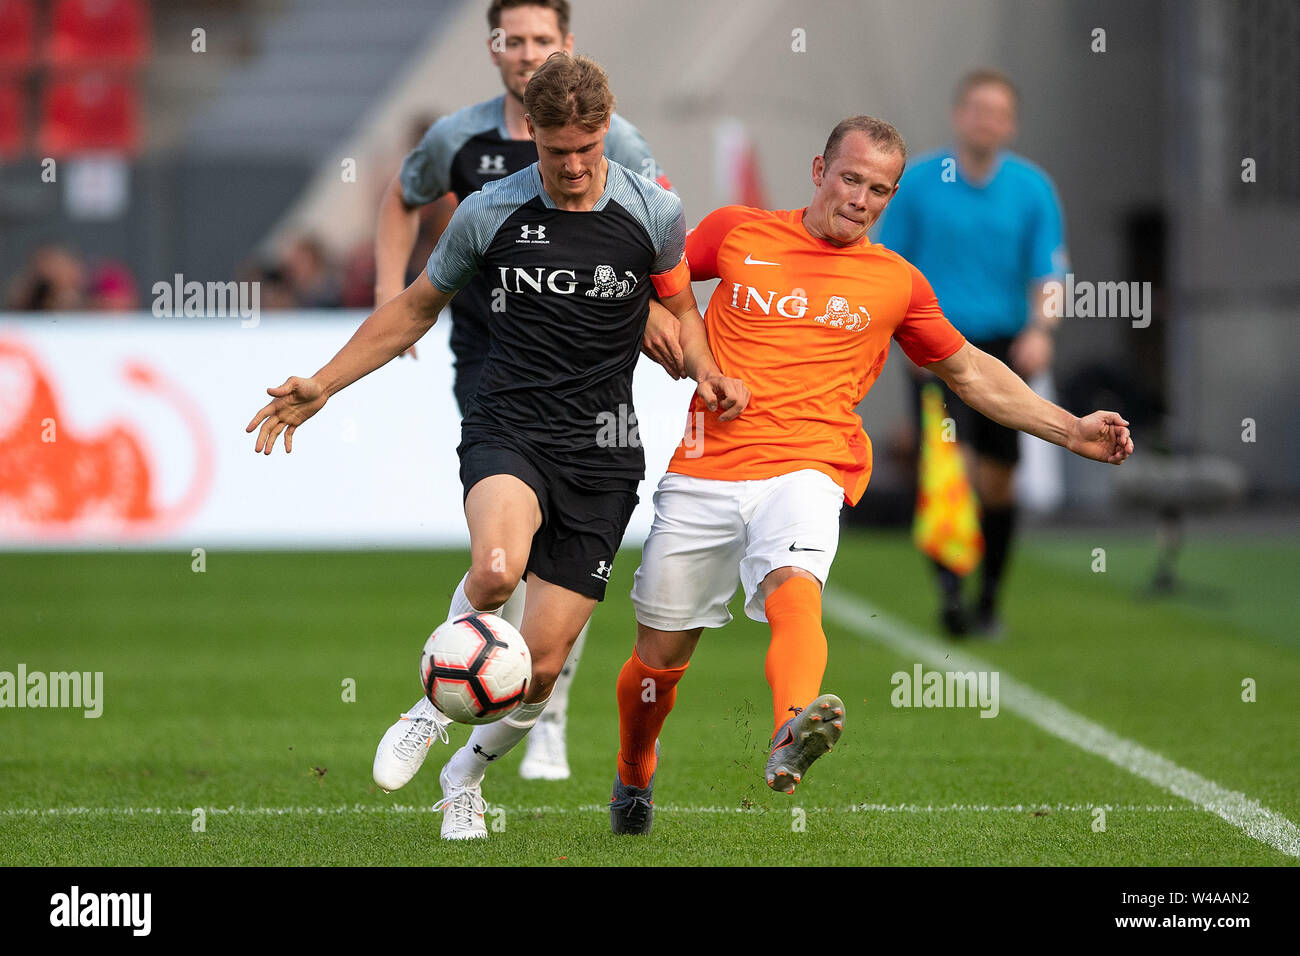 Leverkusen, Germany. 21st July, 2019. Soccer: Benefit soccer game 'Champions for Charity' in the BayArena. Racing driver Mick Schumacher (l) and former gymnast Fabian Hambüchen fight for the ball. Credit: Marius Becker/dpa/Alamy Live News - Stock Image